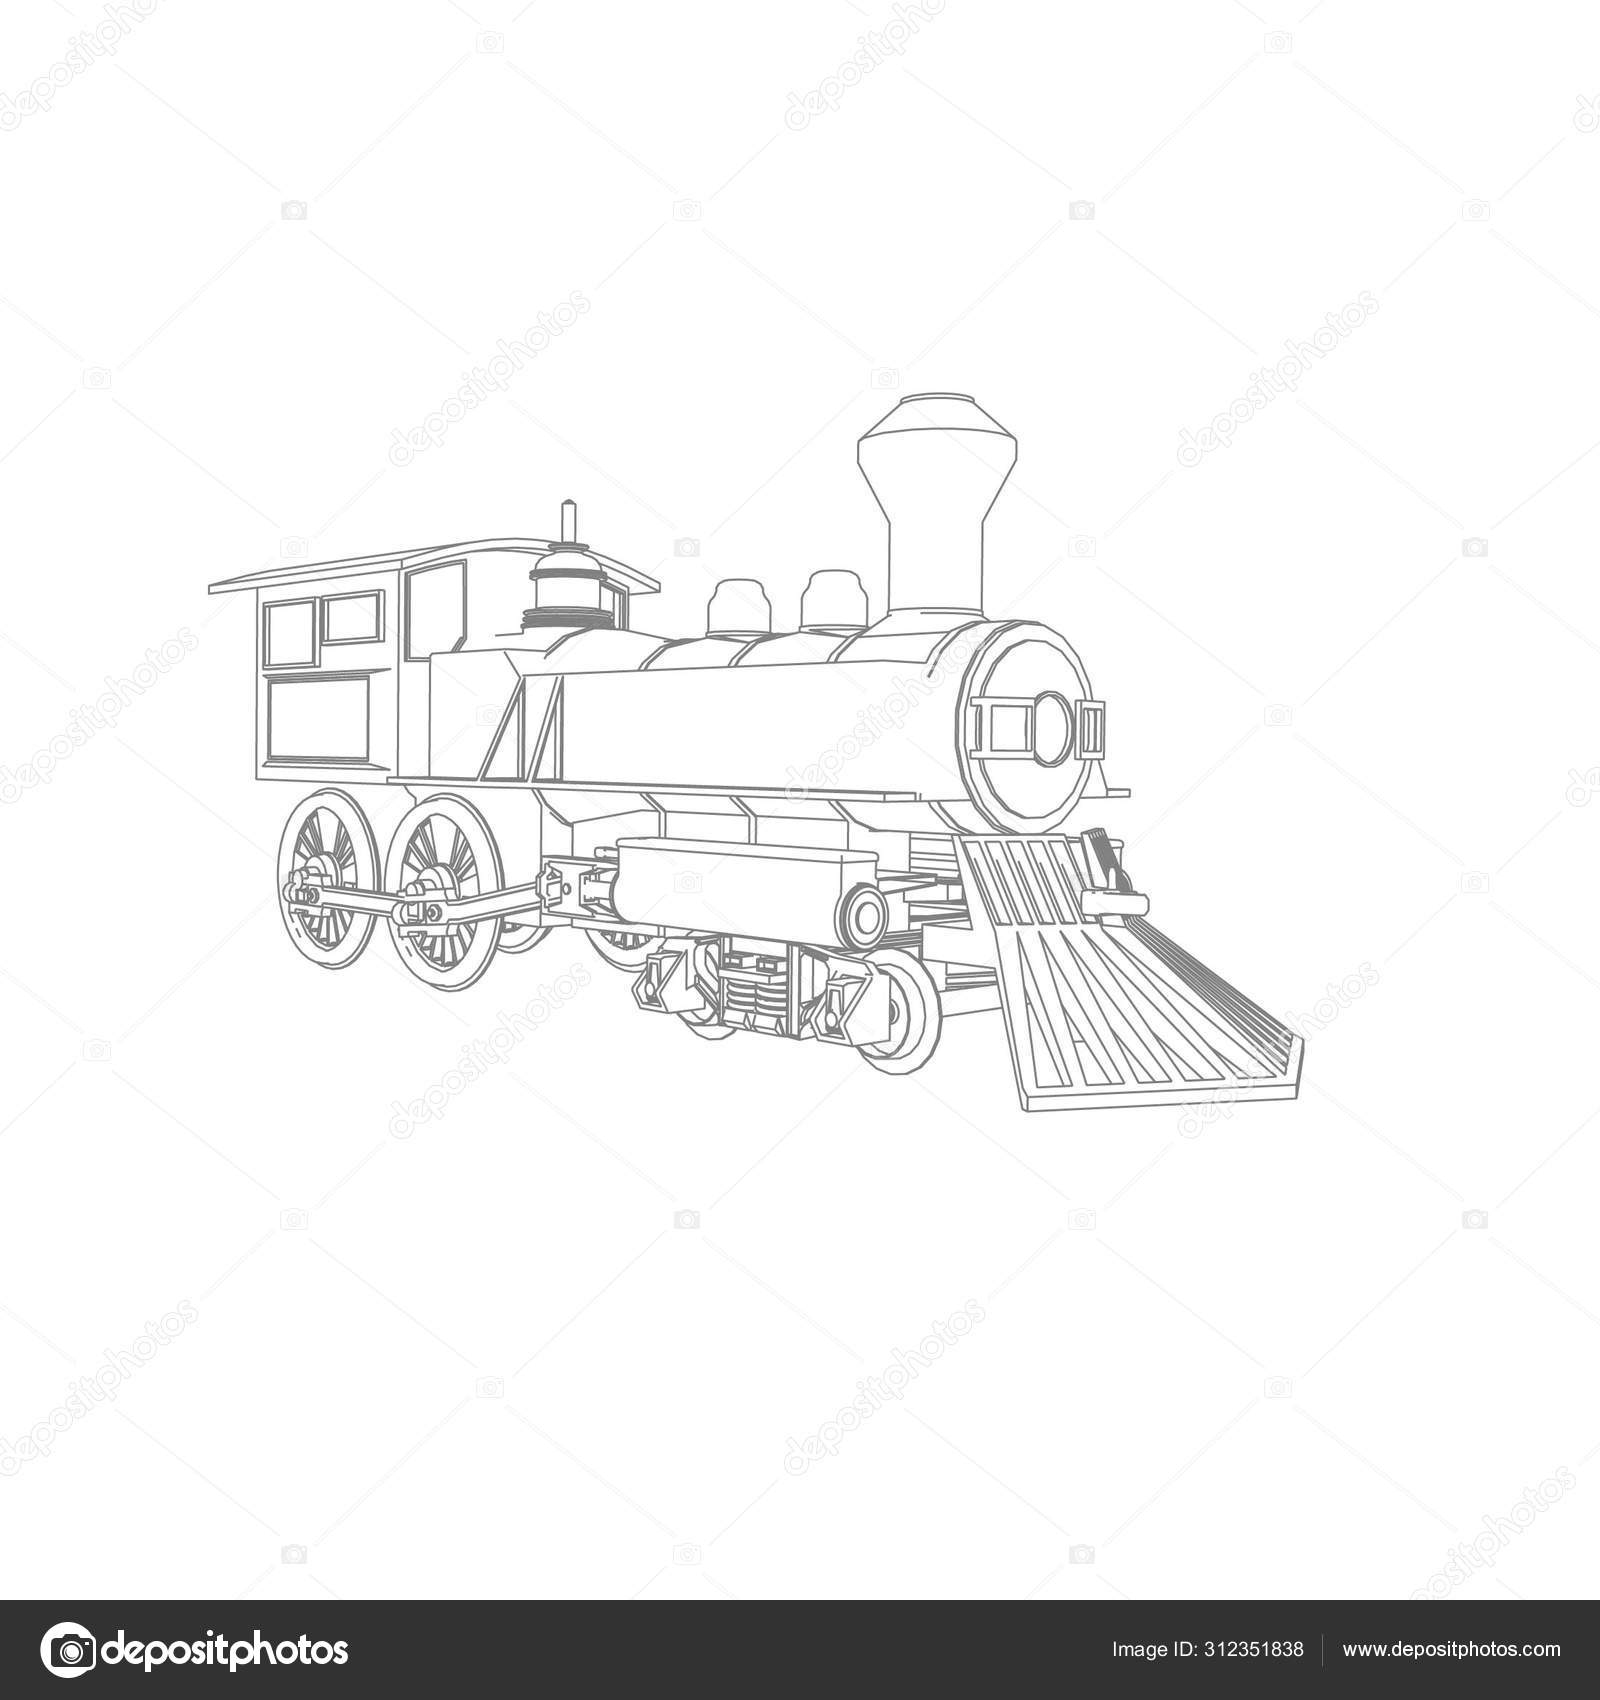 Line Art Of The Train Coloring Page Train Illustration For